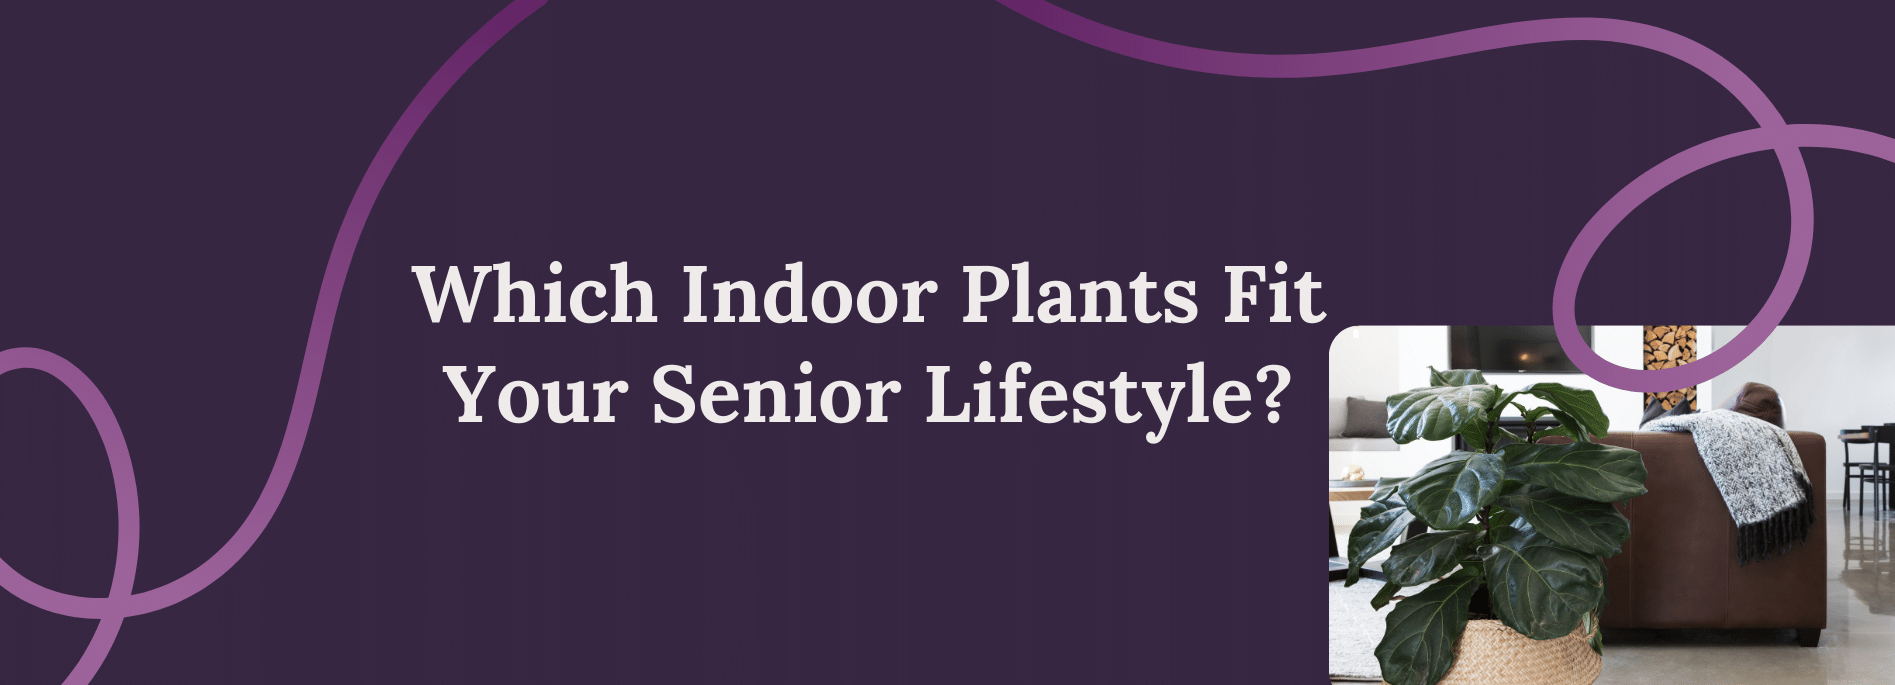 Which Indoor Plants Fit Your Senior Lifestyle?